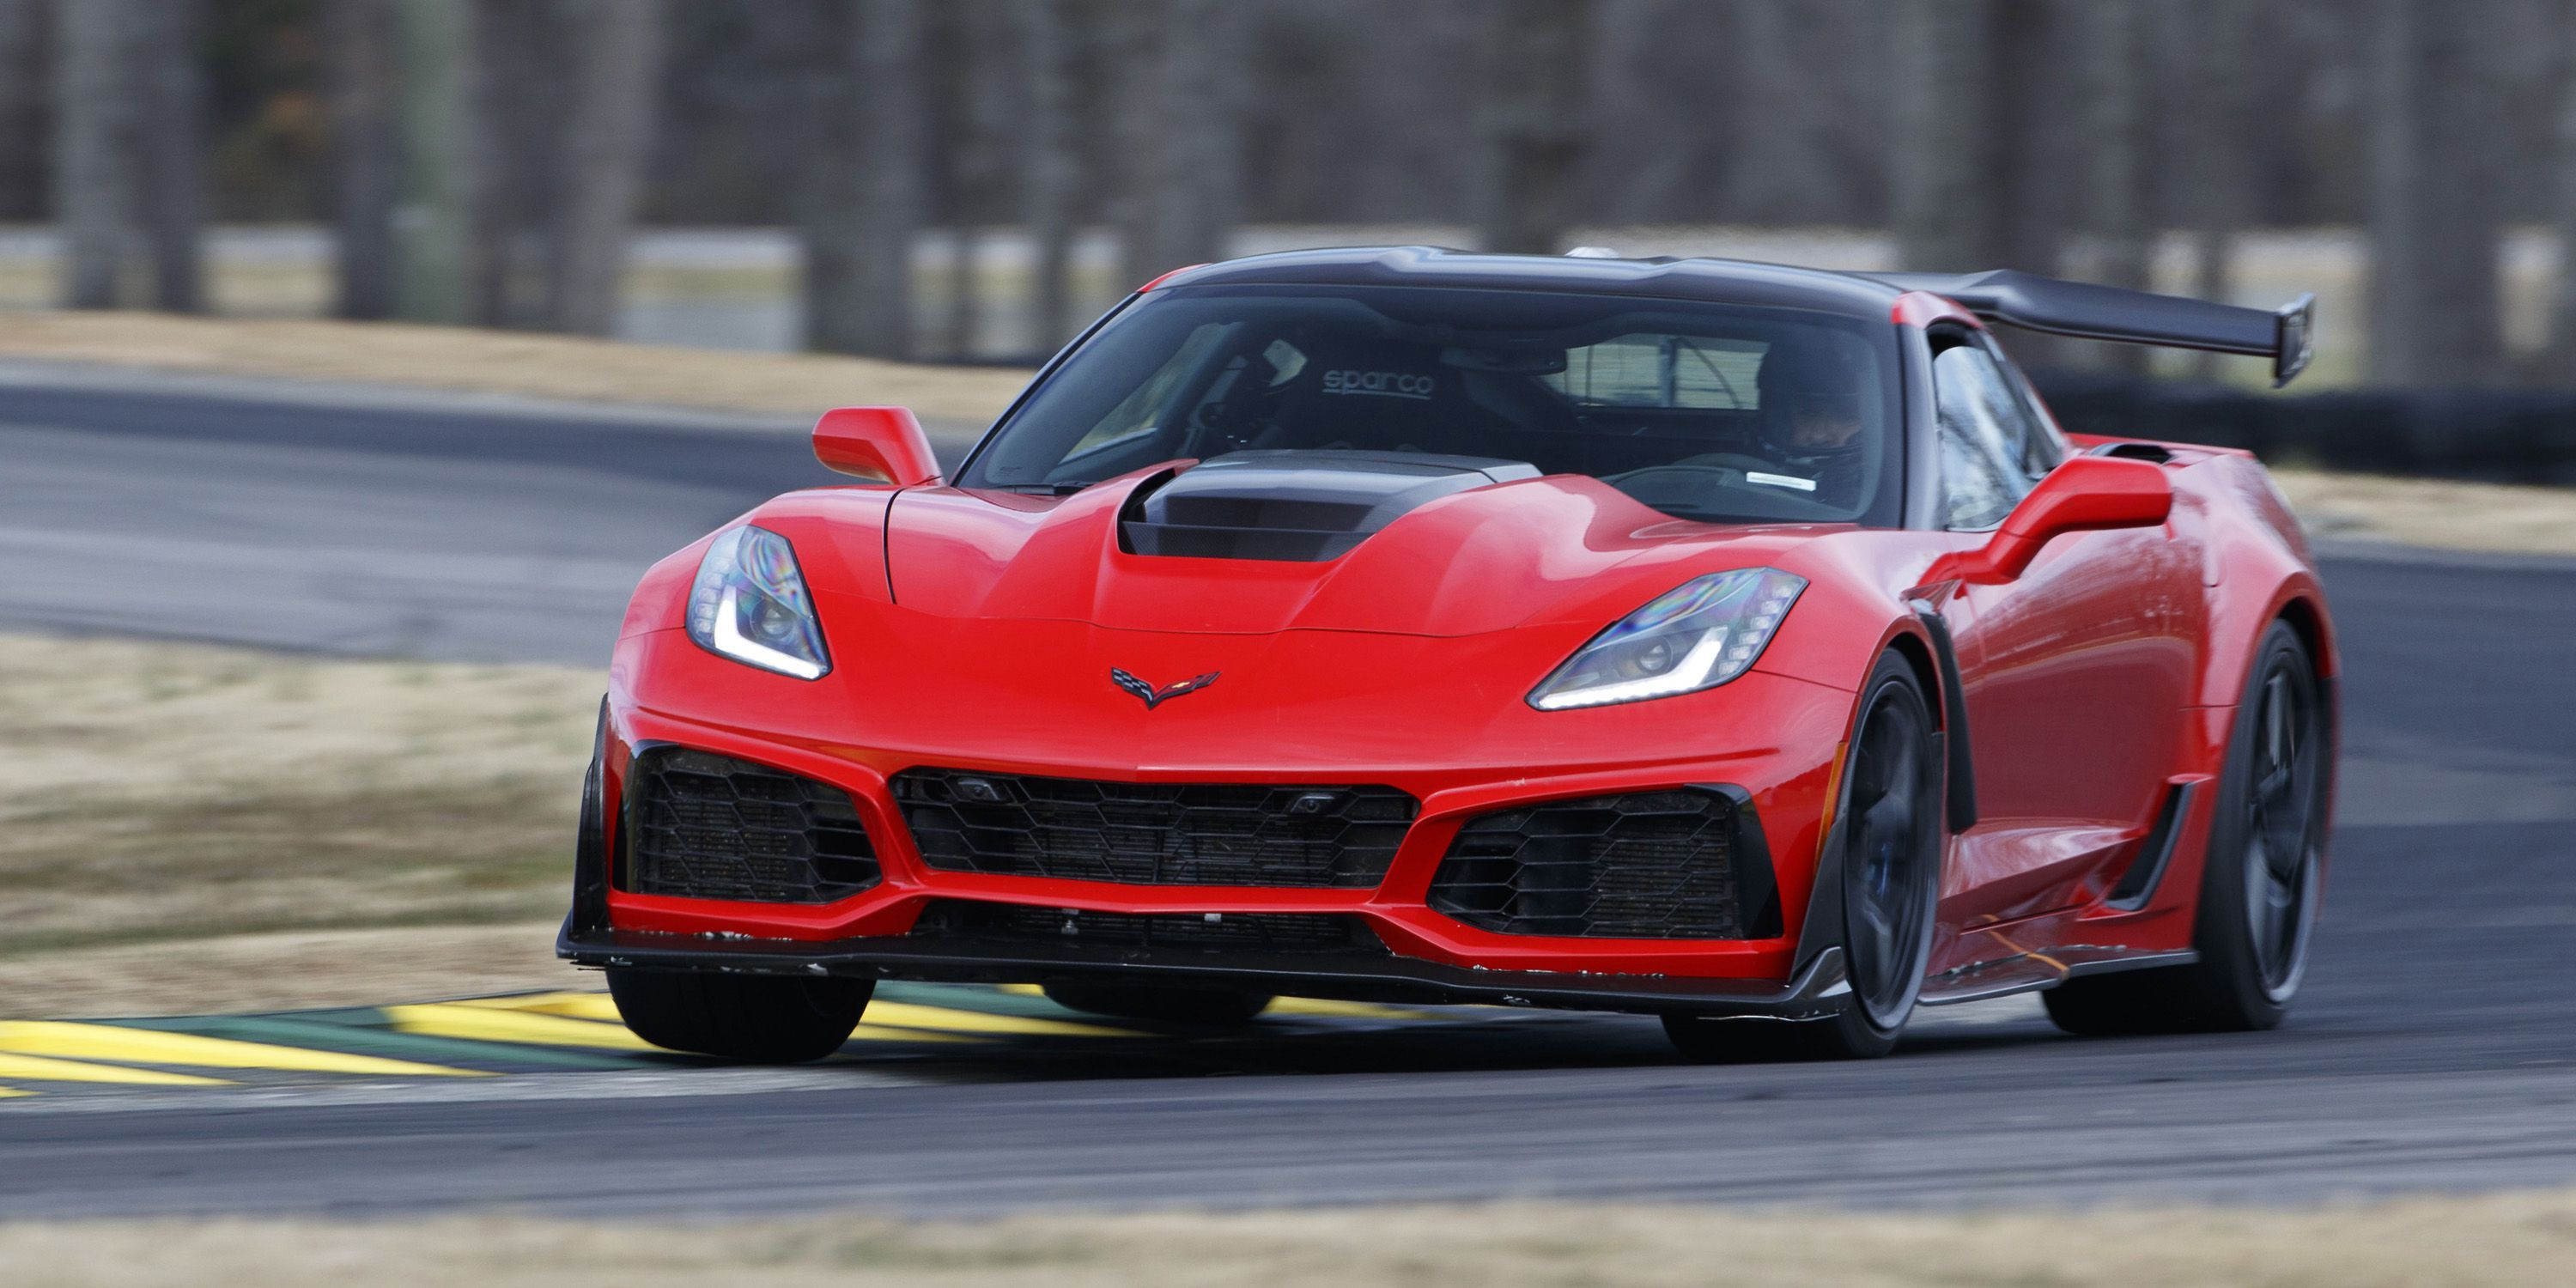 1990 Chevrolet Corvette Zr1 2019 Corvette Zr1 Does 60 In 2 85 Seconds Hits 100 In Six